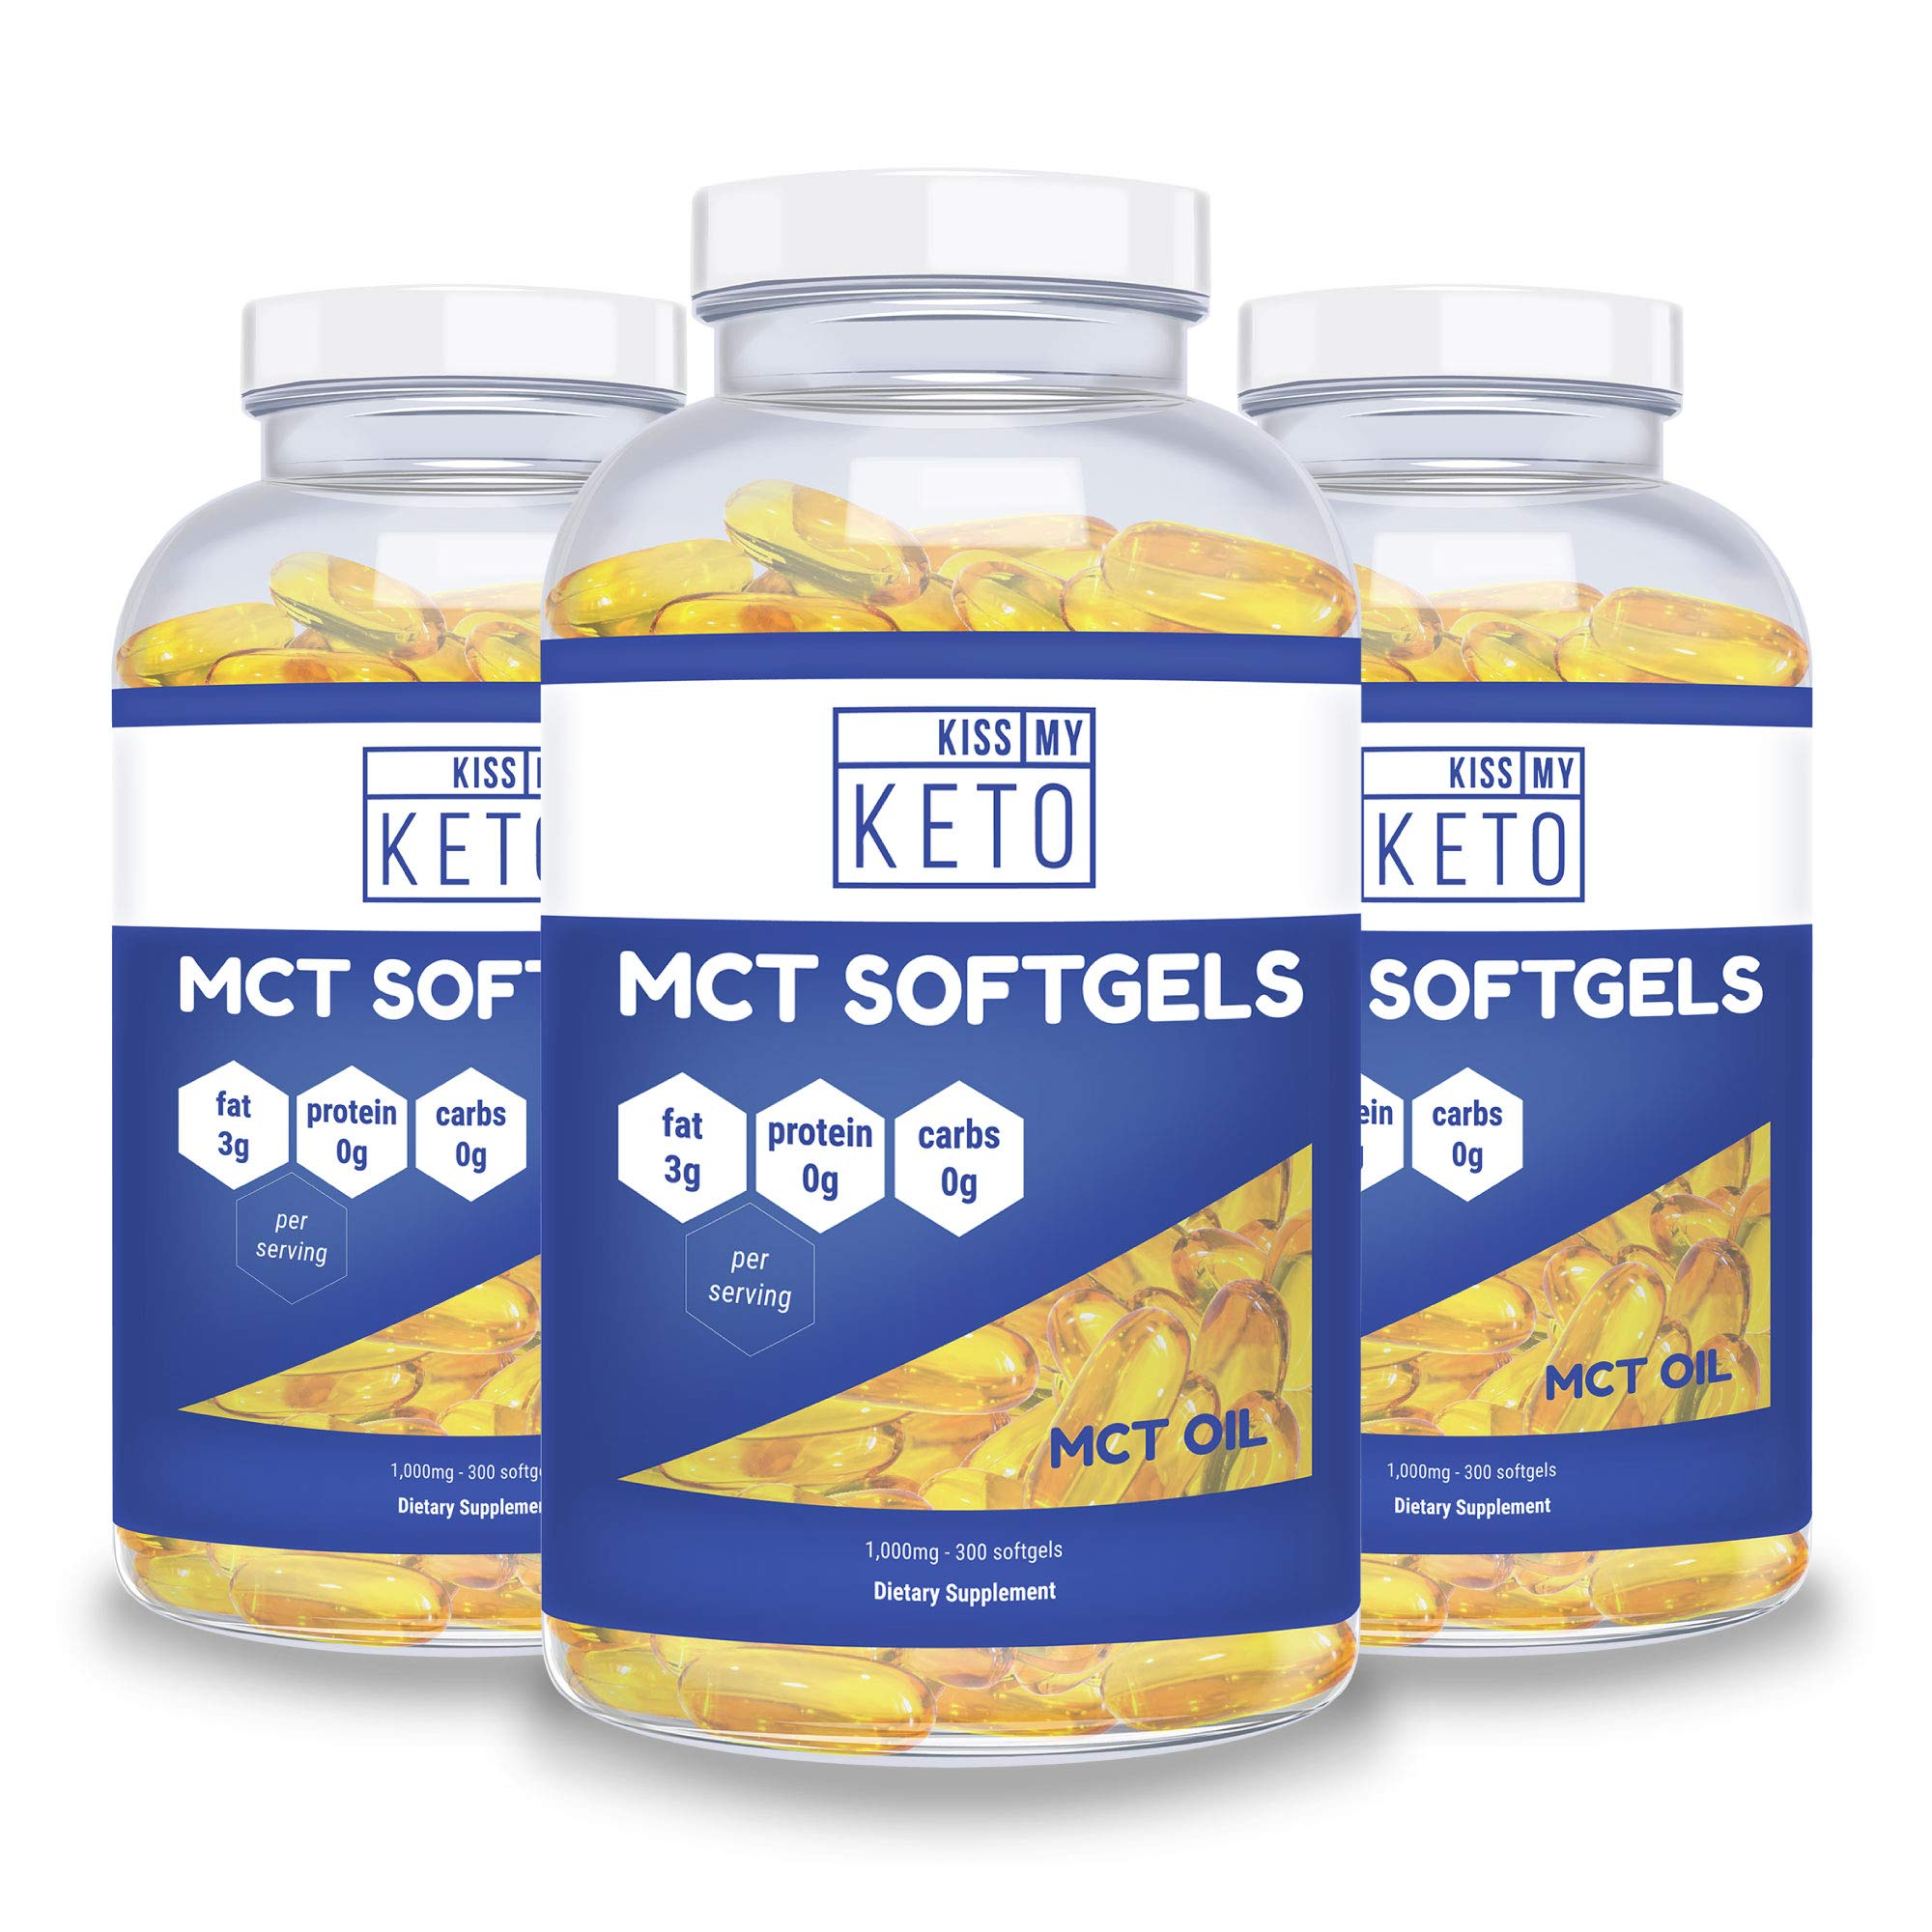 Kiss My Keto MCT Oil Capsules - Coconut Oil Softgel Pills, 300 Count, MCT Pills, Best MCT Oil Keto Ketogenic Diet. Caprylic Acid C8 & C10 Medium Chain Triglycerides Diet Keto Supplement (3 Pack) by Kiss My Keto